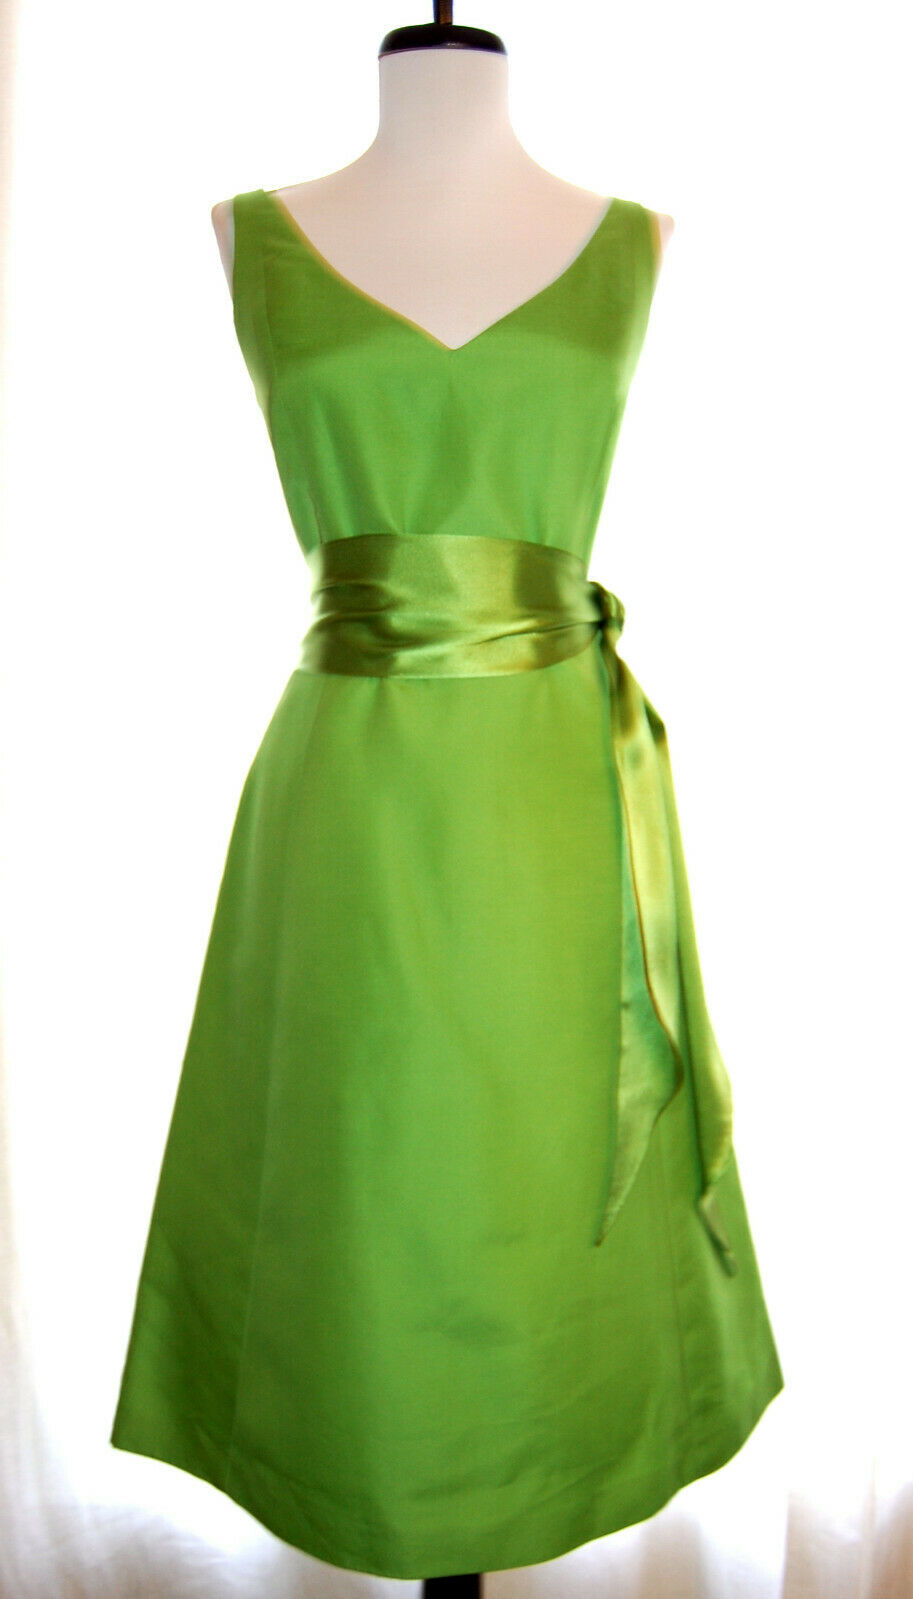 NEW J CREW cotton taffeta Grün sleeveless v-neck dress satin sash belt 4 NWT